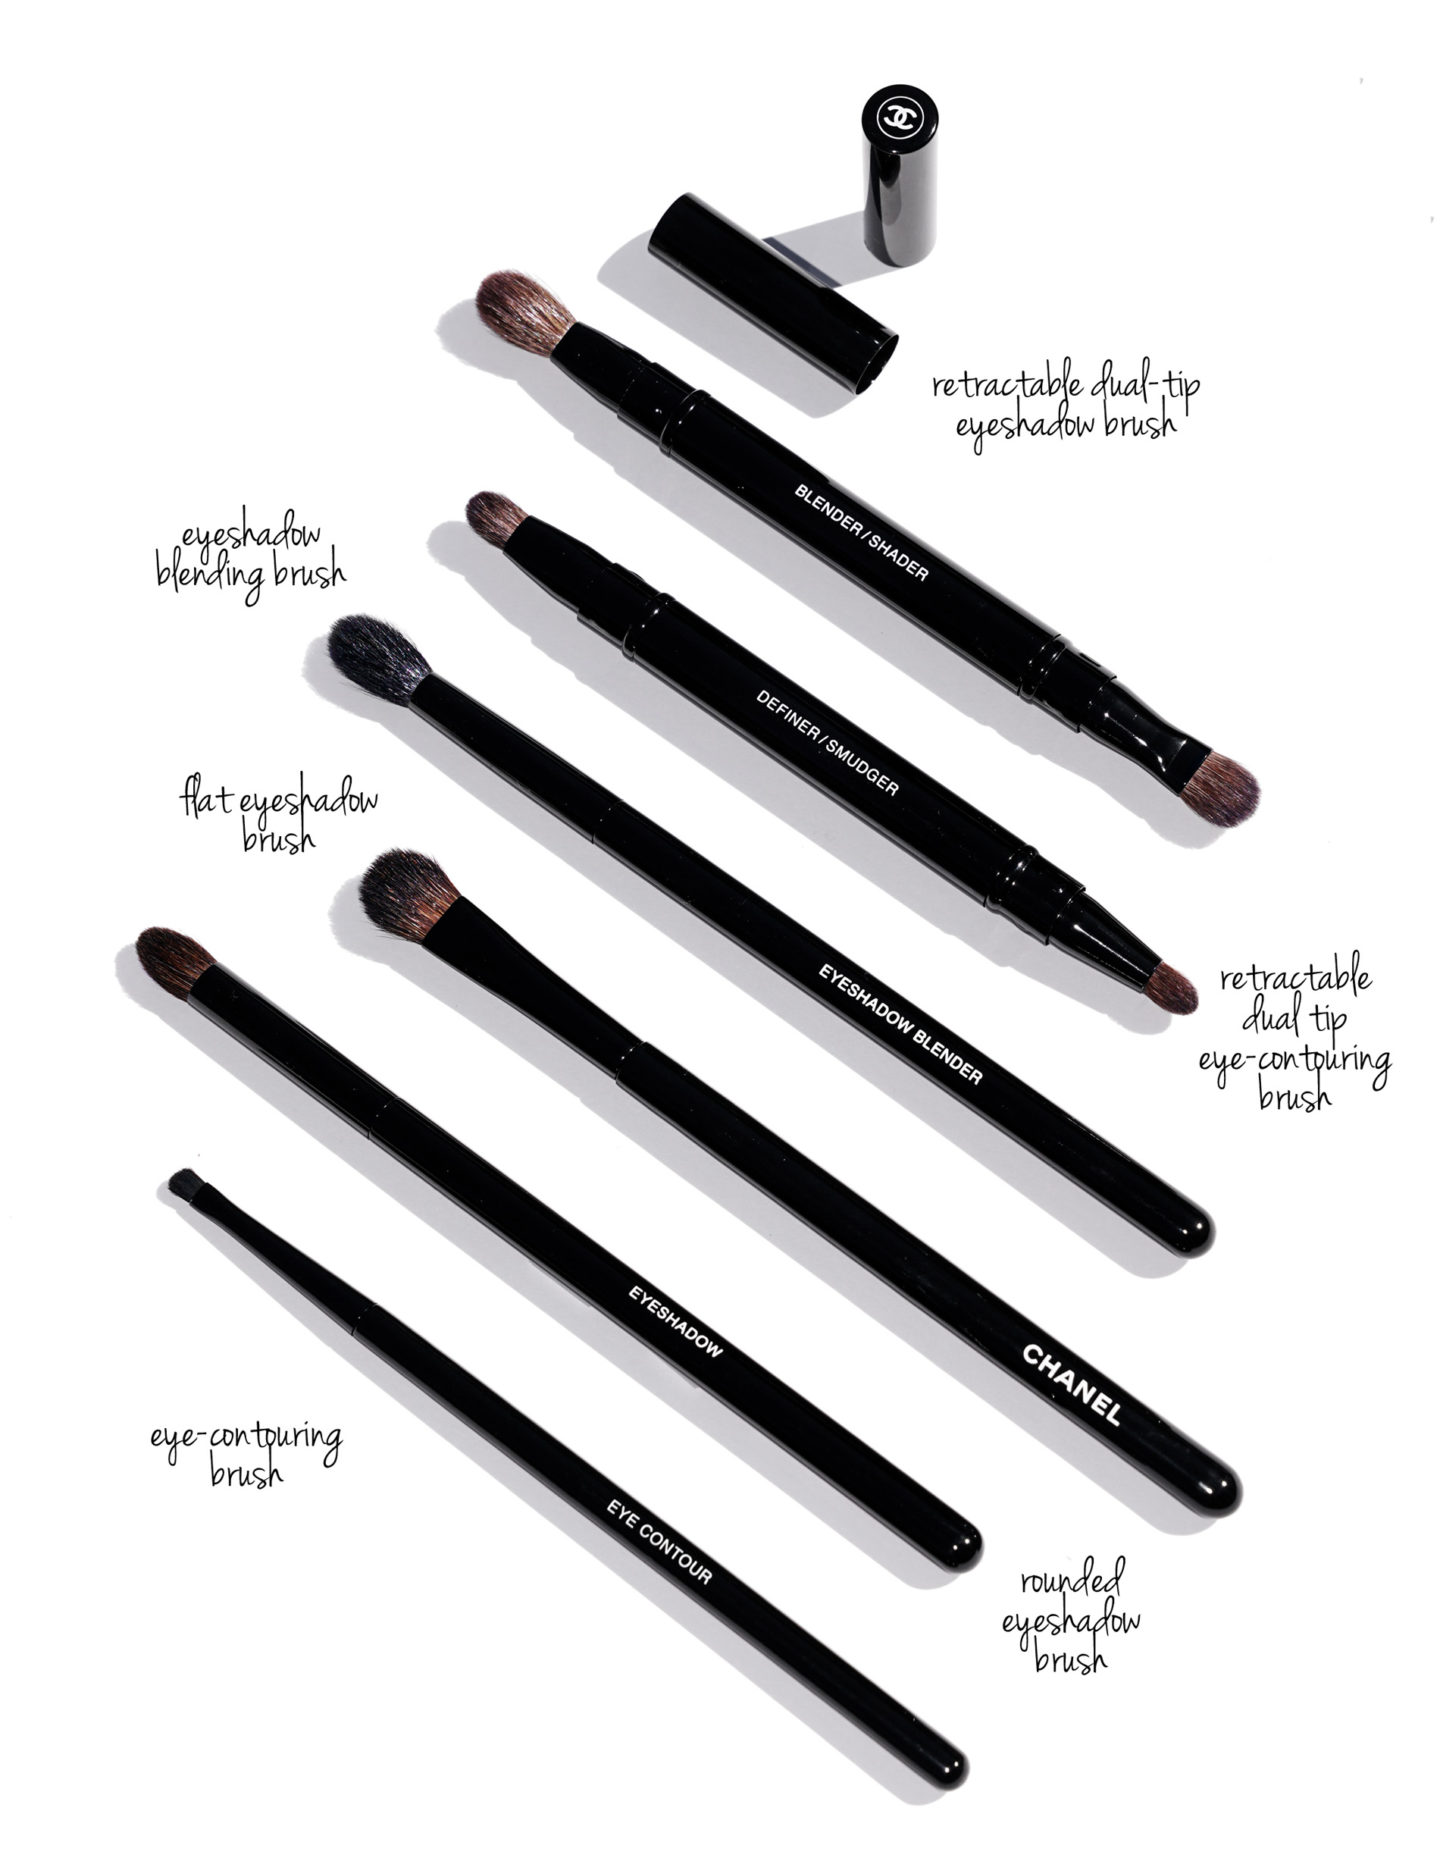 Chanel Eye Brushes New Design | The Beauty Look Book